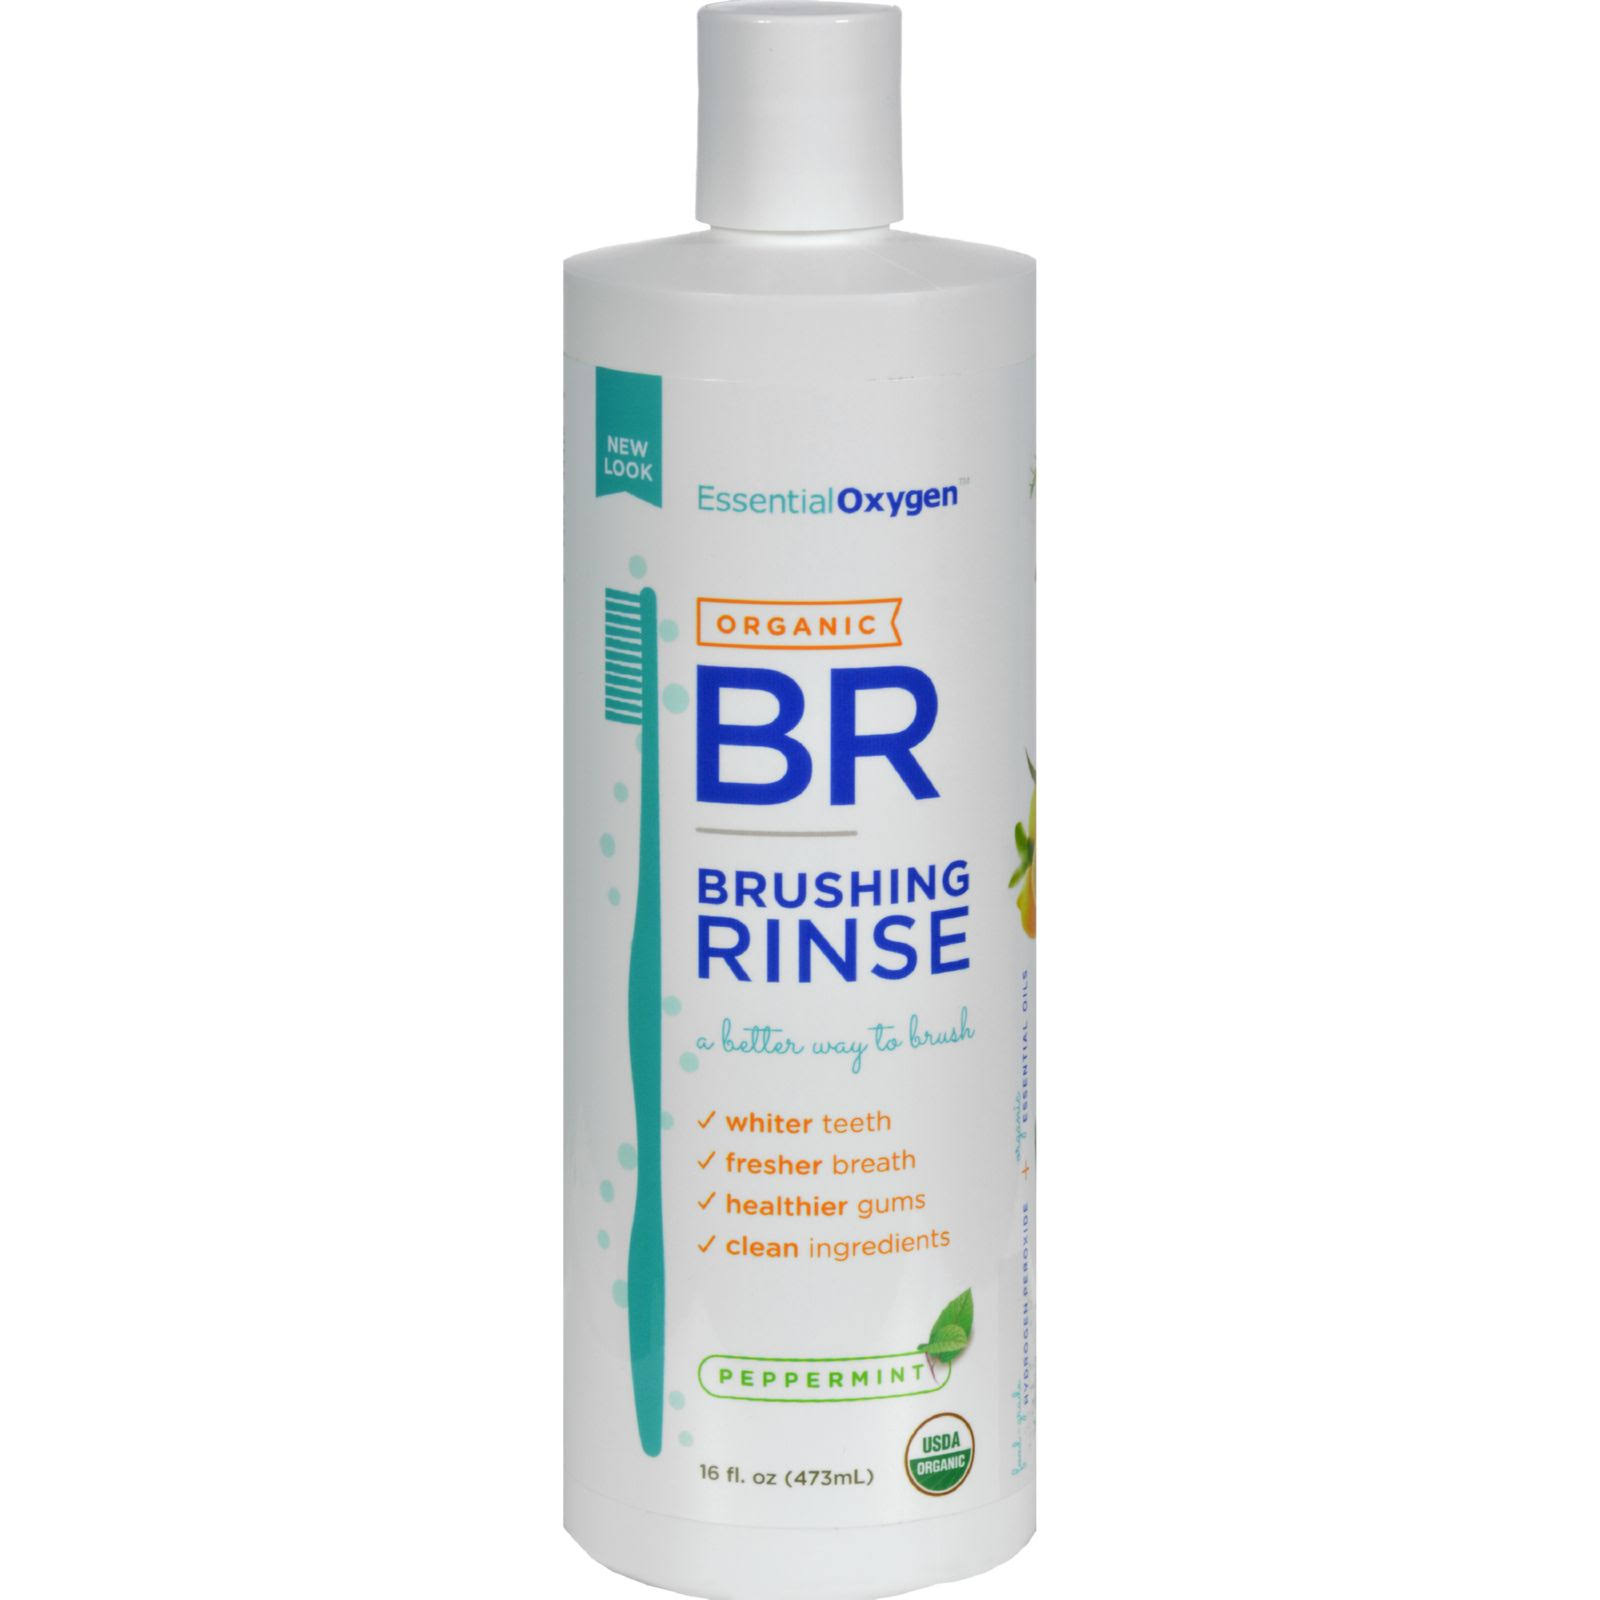 Essential Oxygen Organic Brushing Rinse - Peppermint, 16oz